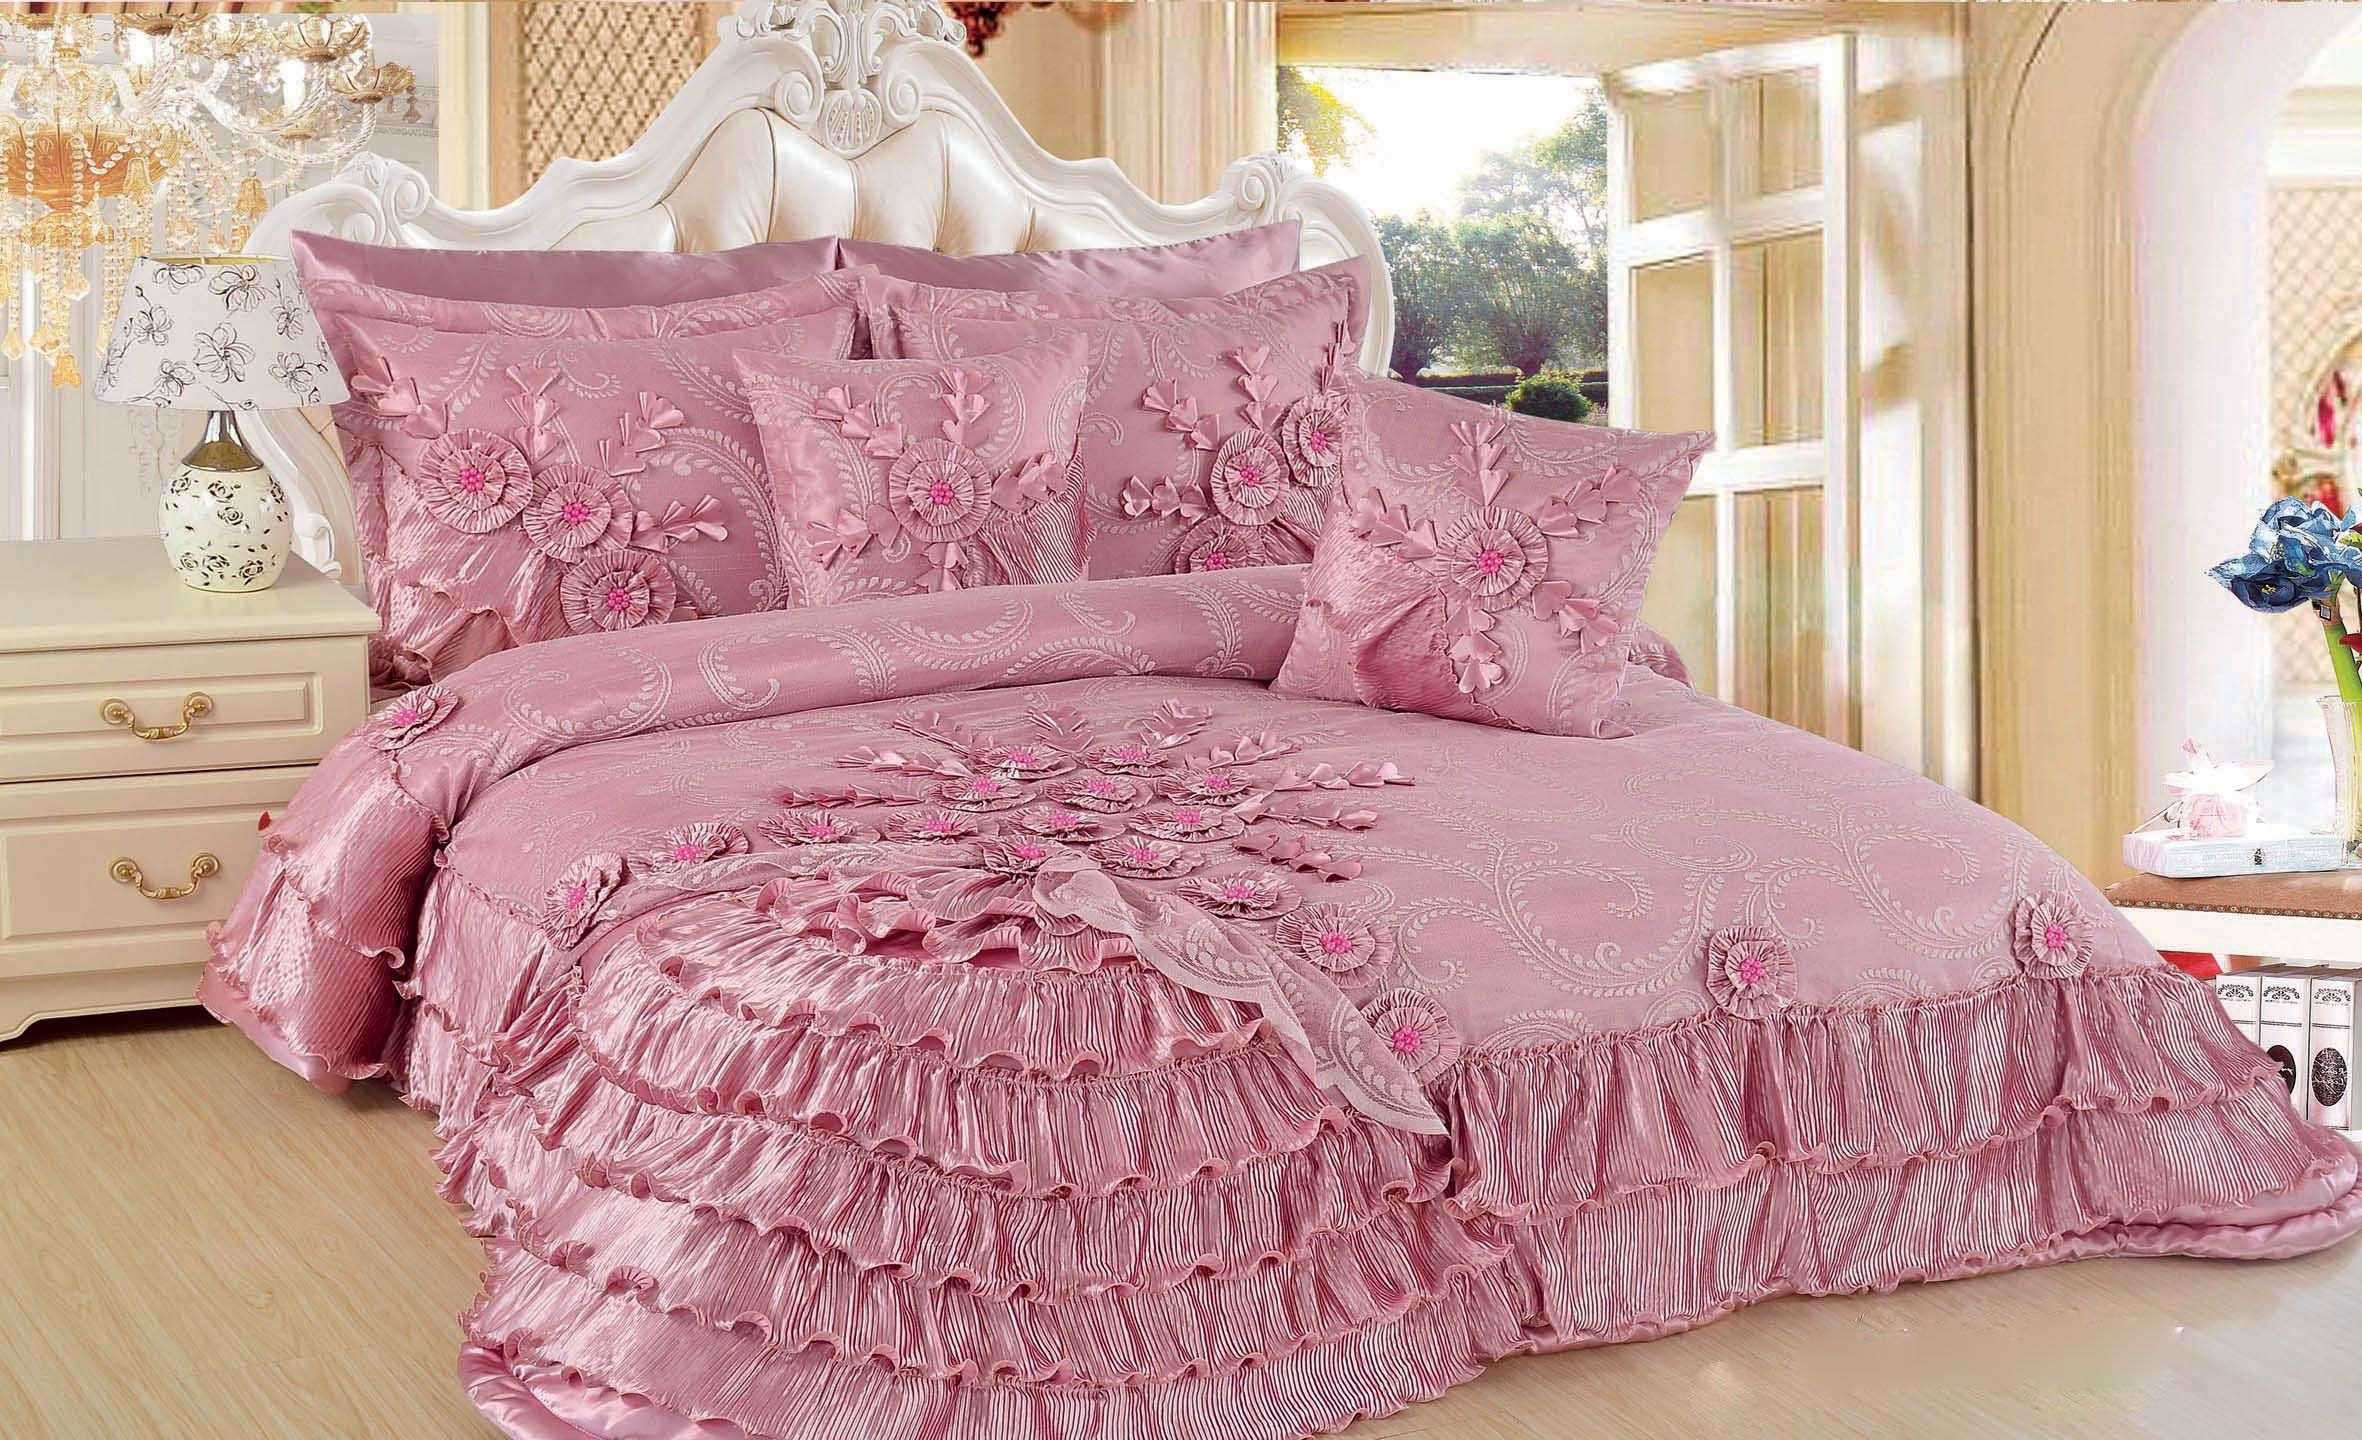 DaDa Bedding BM1227 5 Piece Blooming forter Set Queen Size